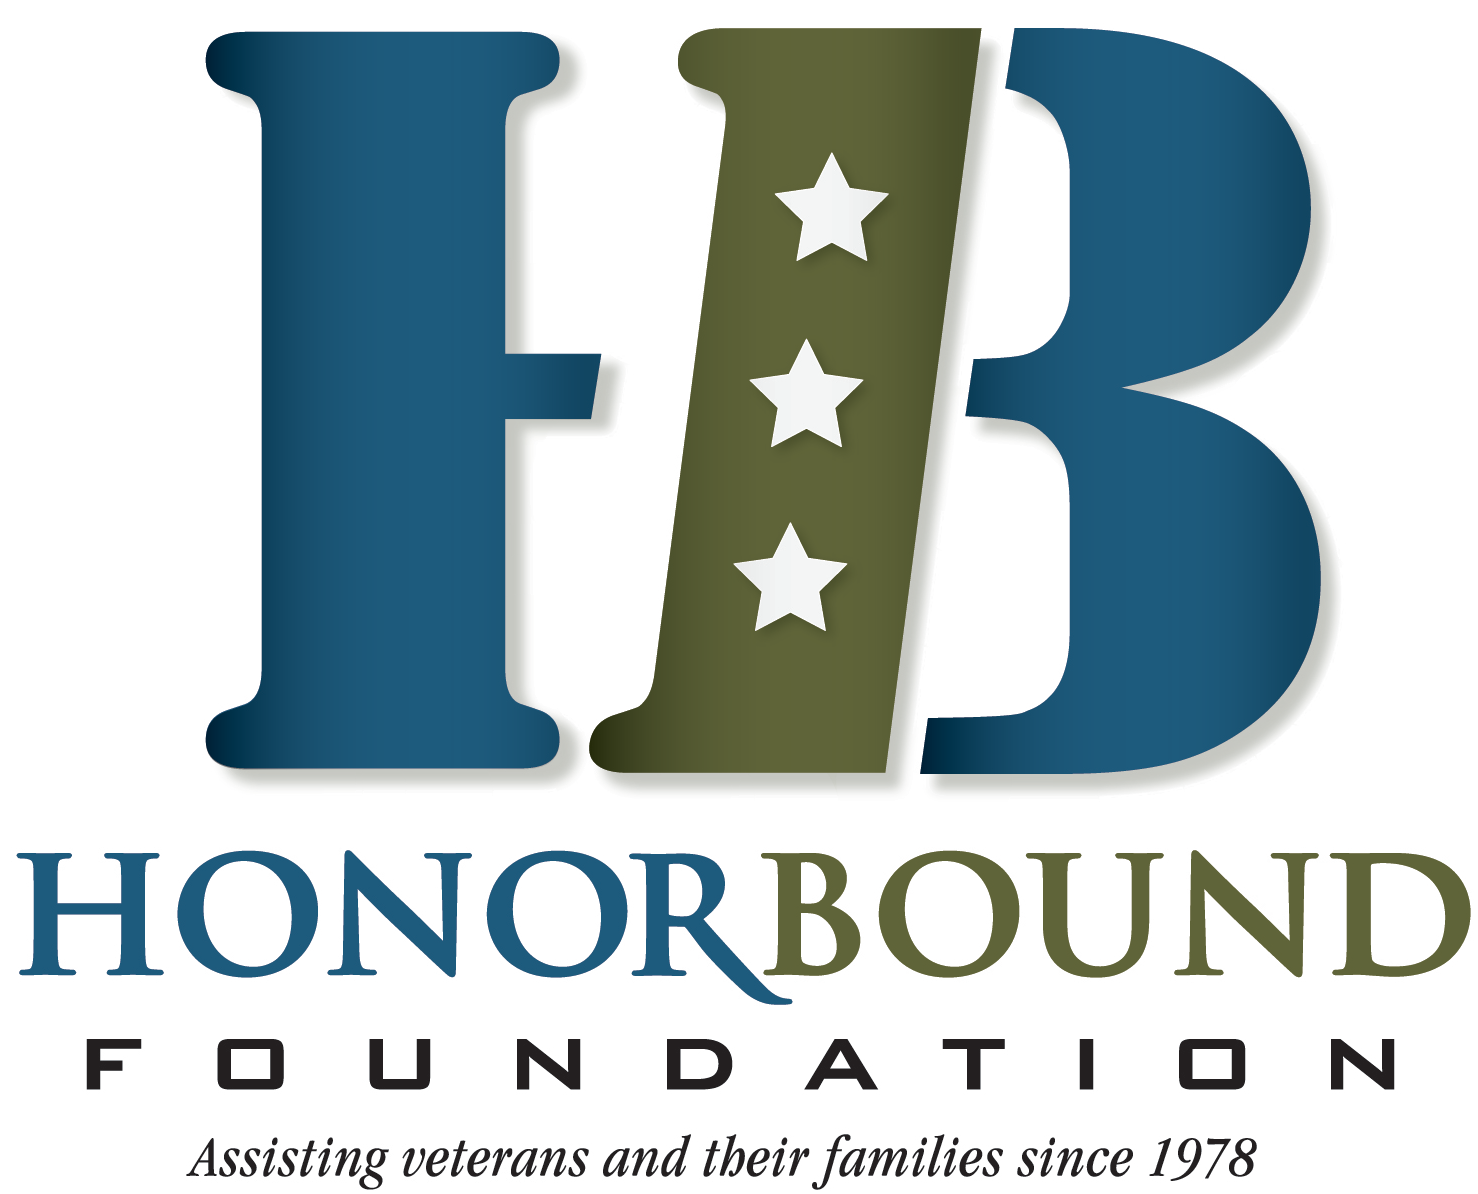 Kansas Car Donations - HonorBound Foundation - DonatecarUSA.com